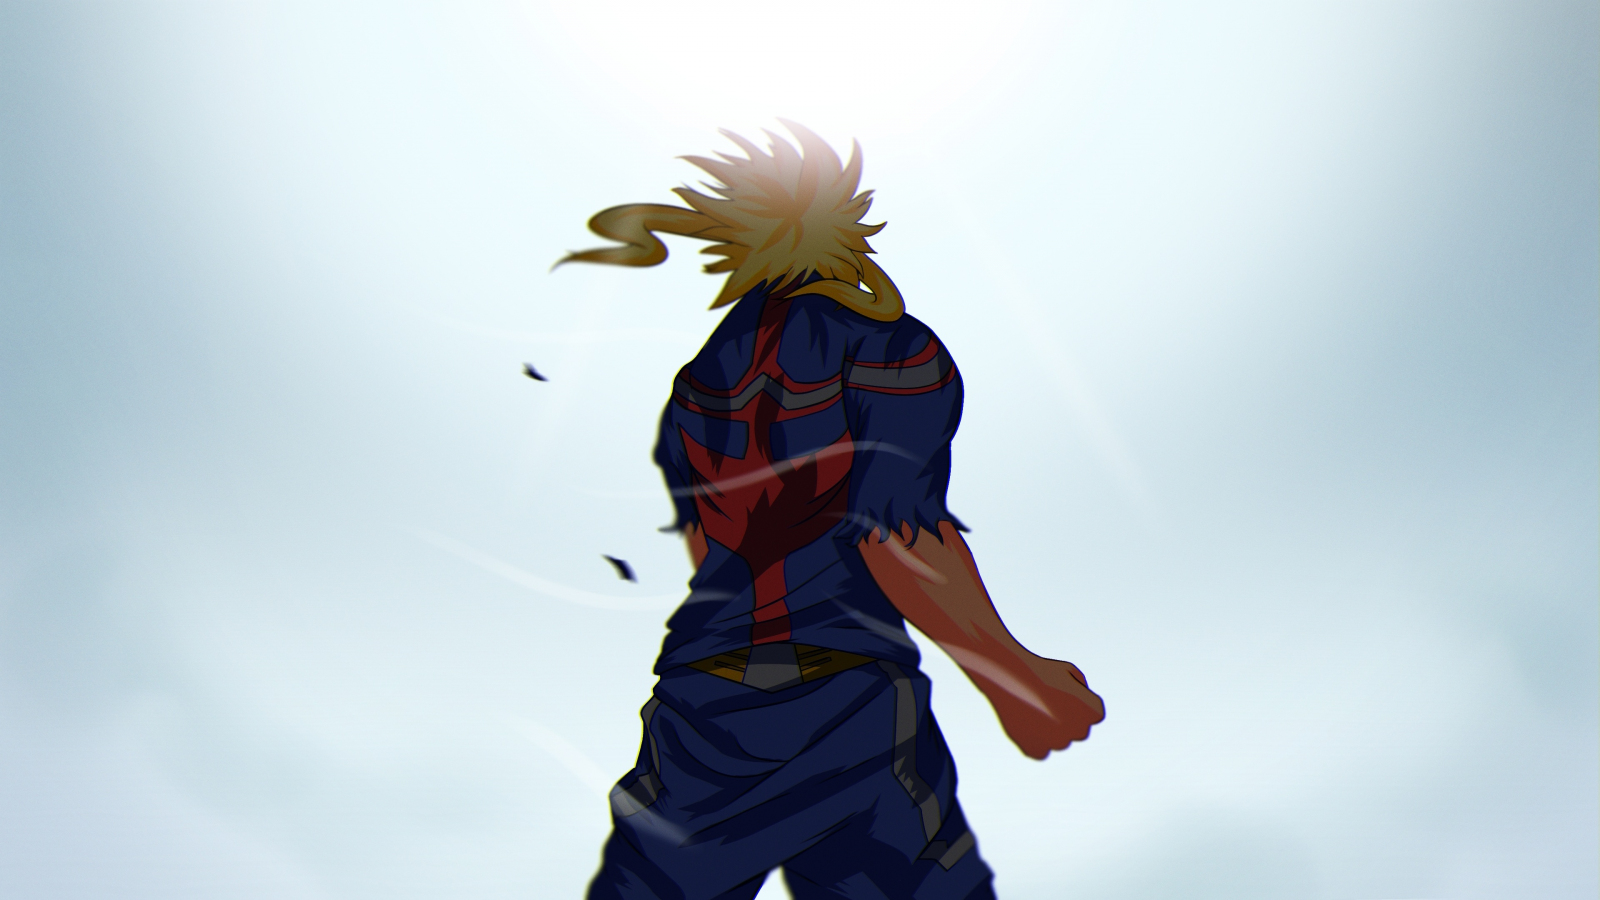 Download 1600x900 Wallpaper All Might My Hero Academia